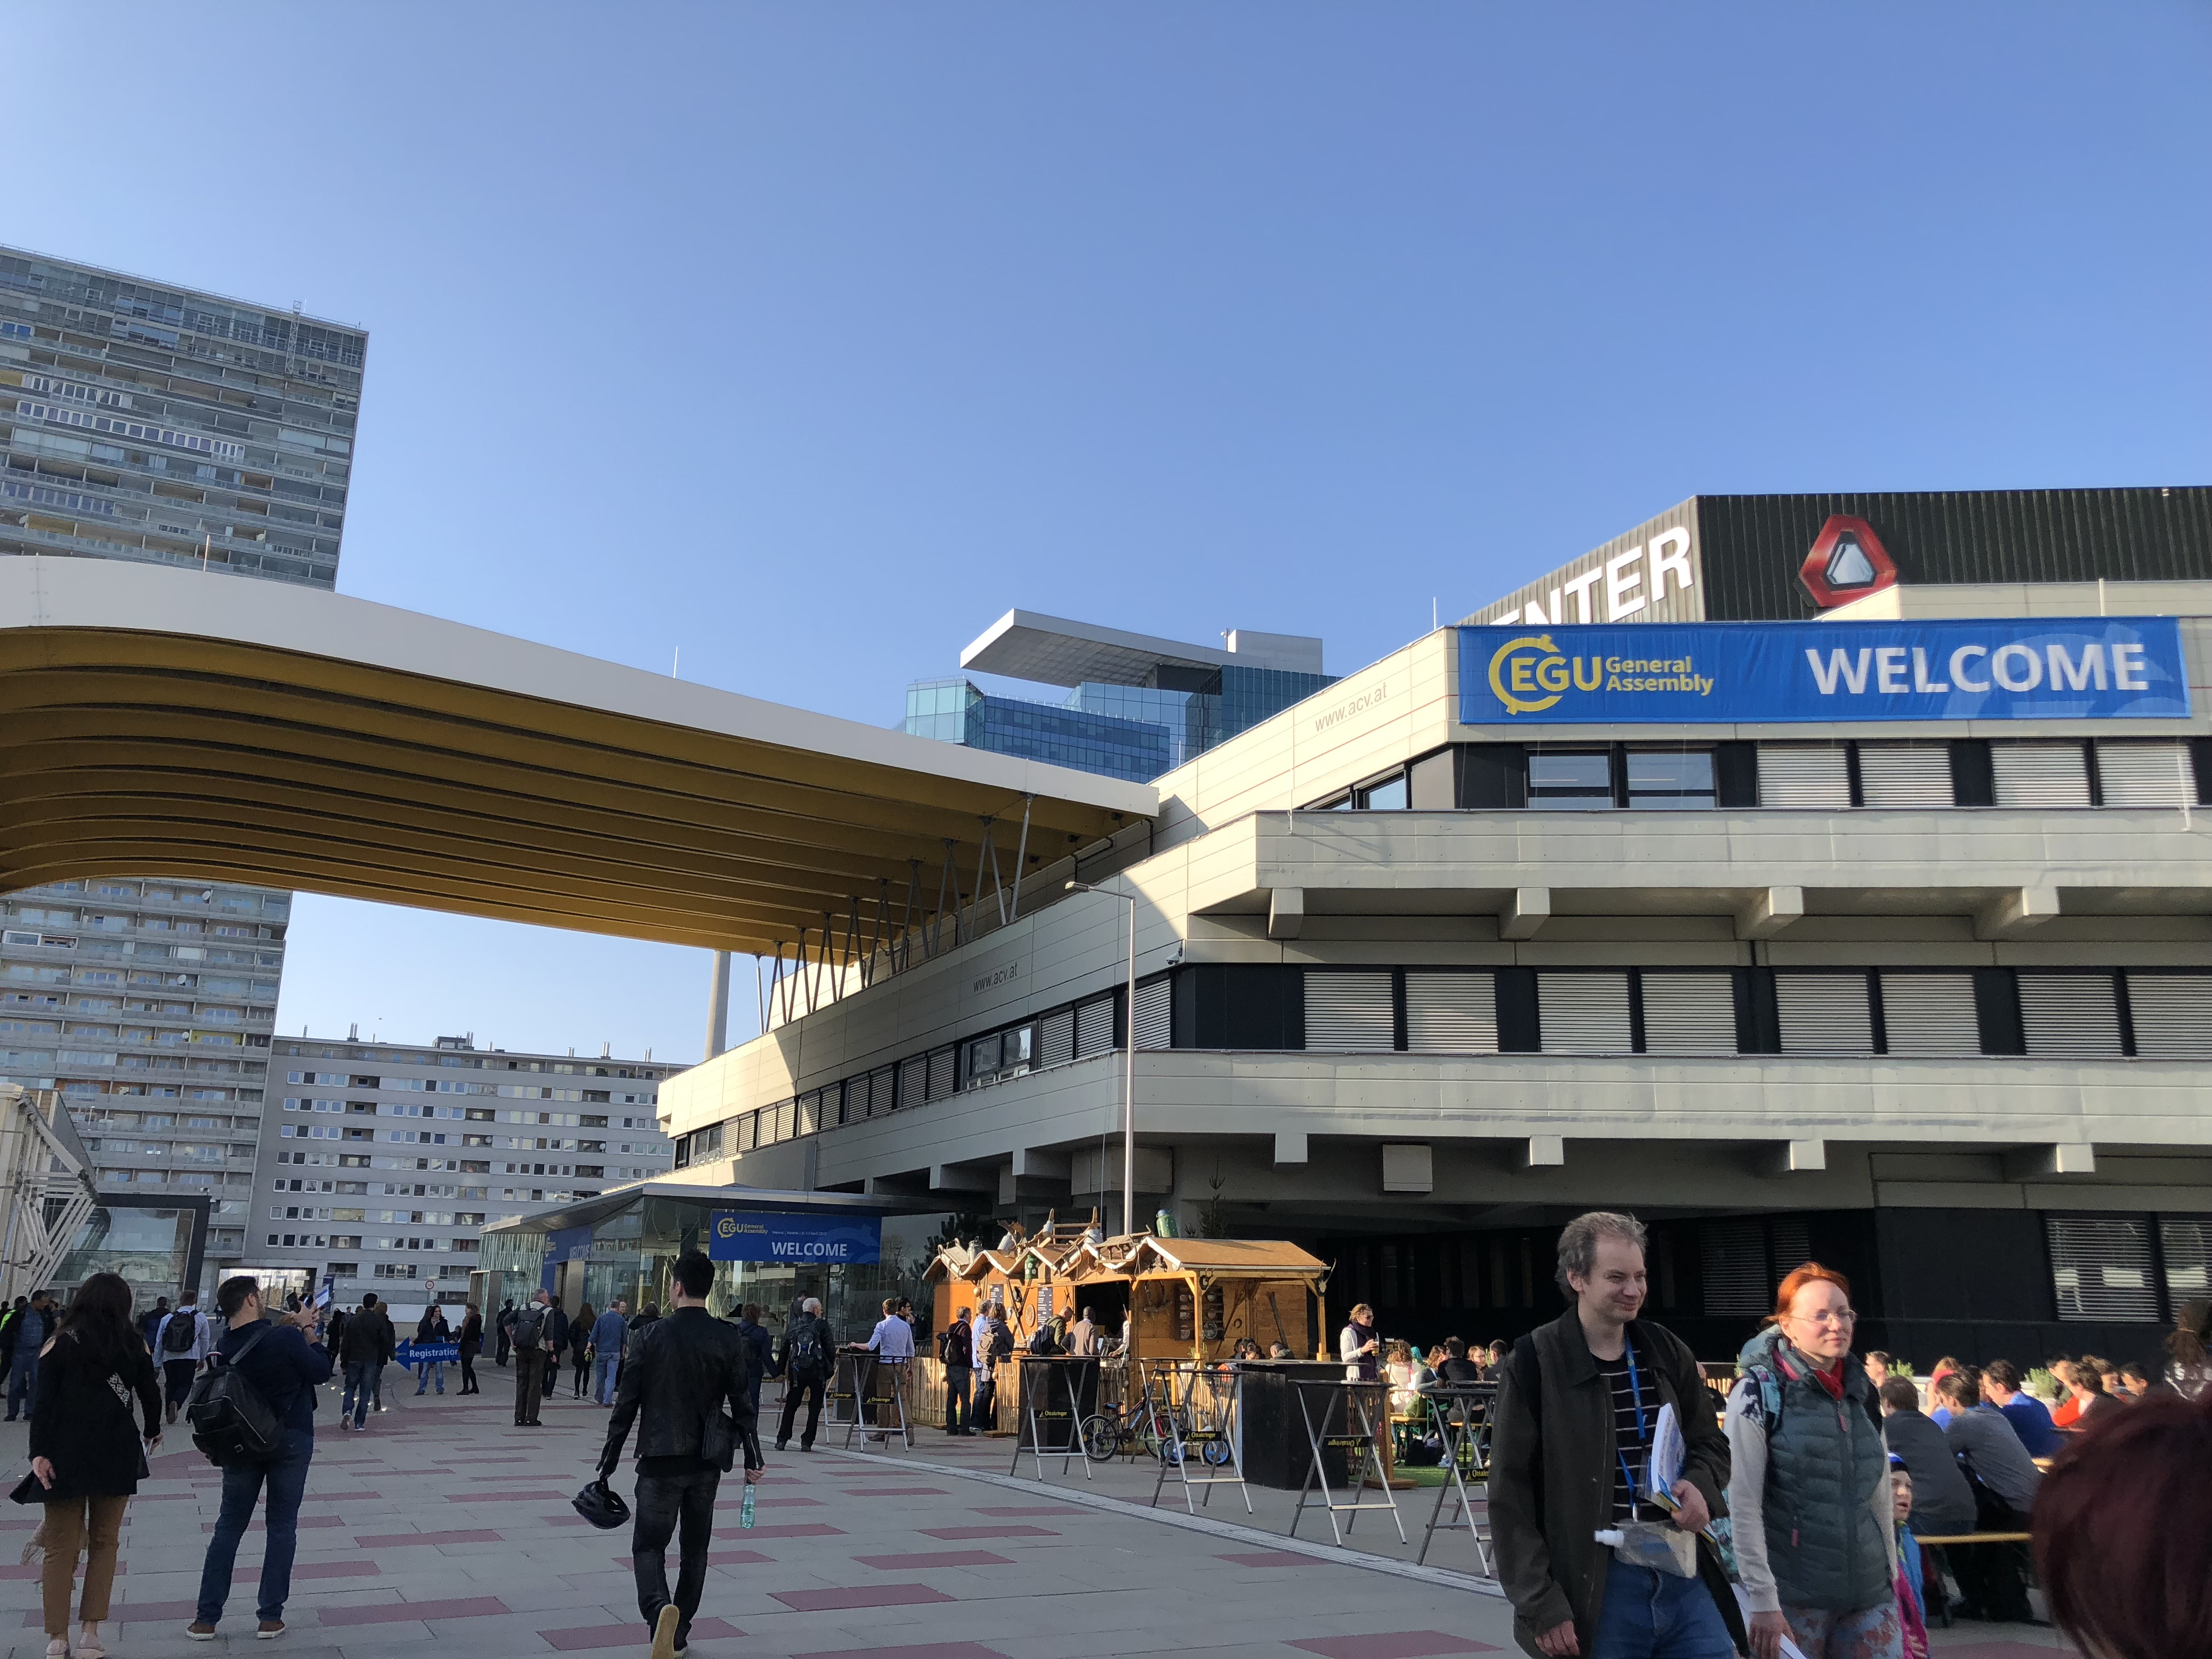 EGU 2018 General Assembly